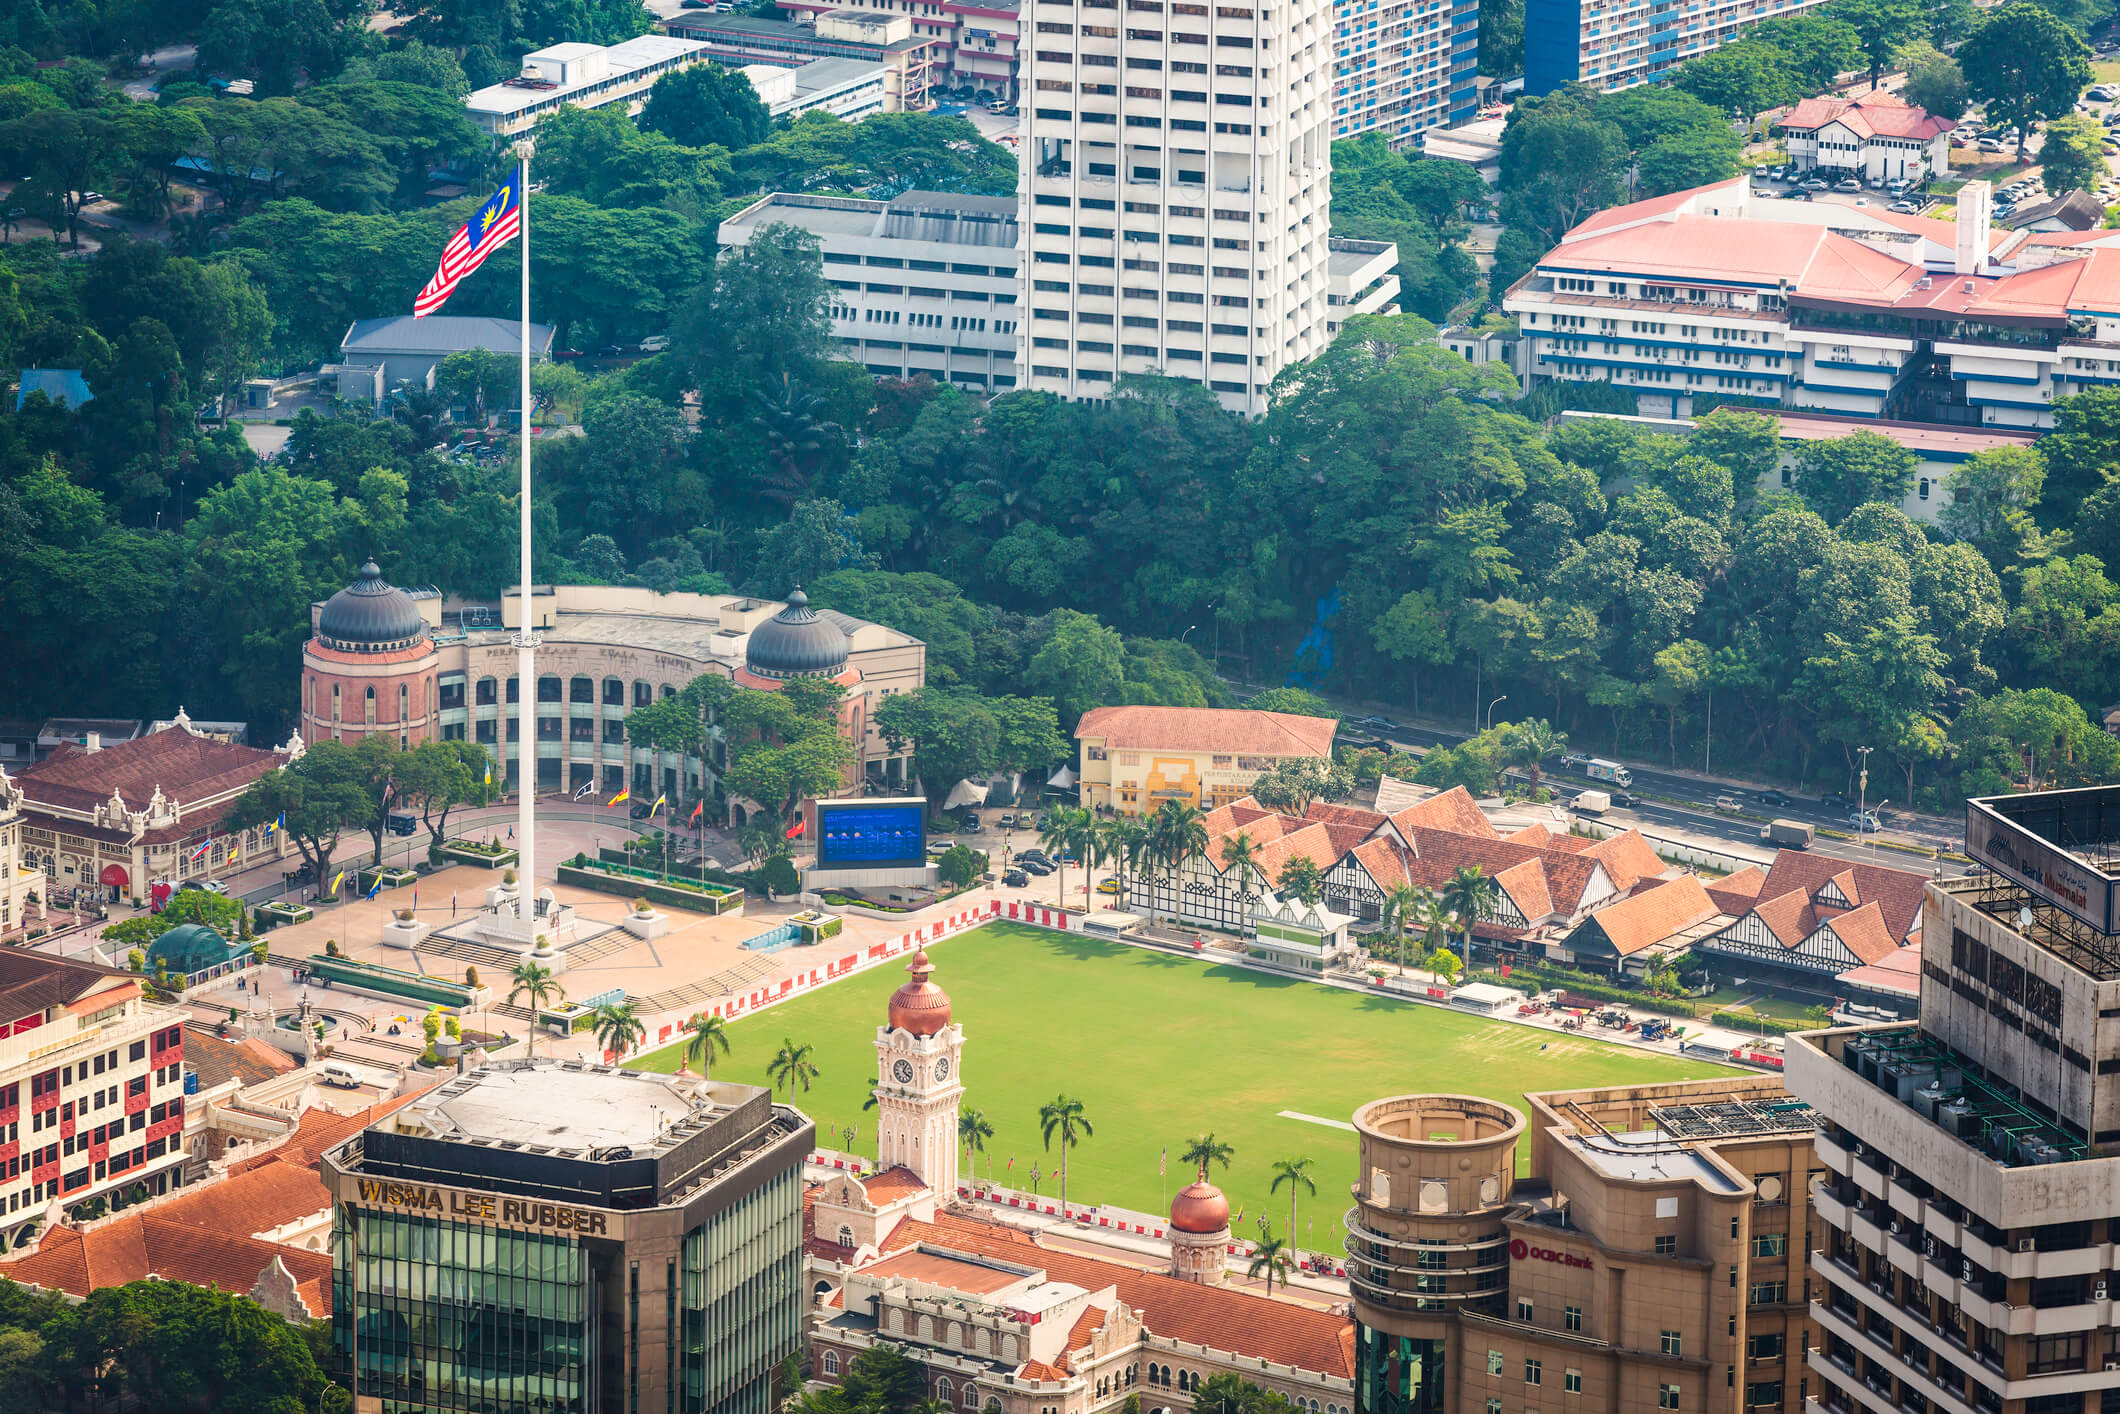 Aerial view of Merdeka Square in KL - things to do in Kuala Lumpur